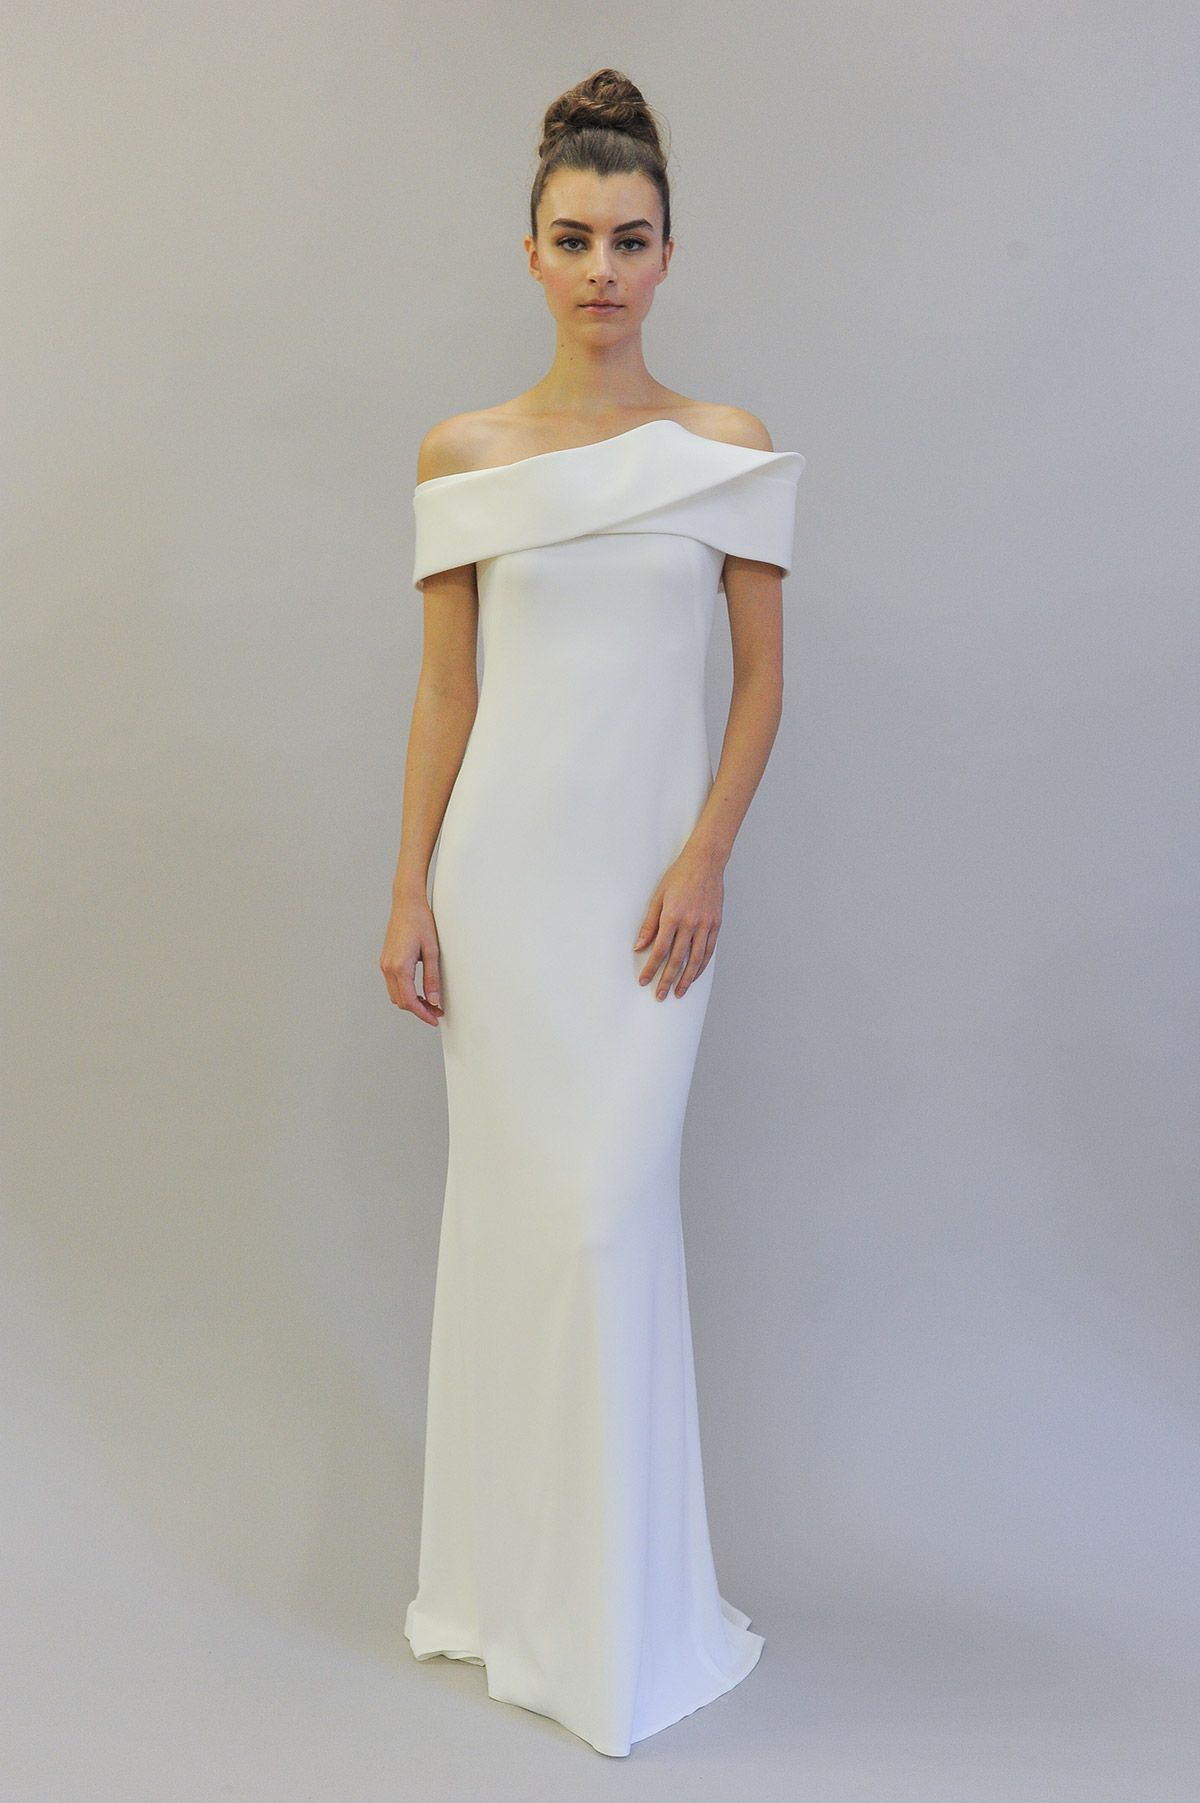 Dresses to wear to a wedding reception  Pin by Aleksandra Szelag on Wedding Gowns  Pinterest  Gowns and